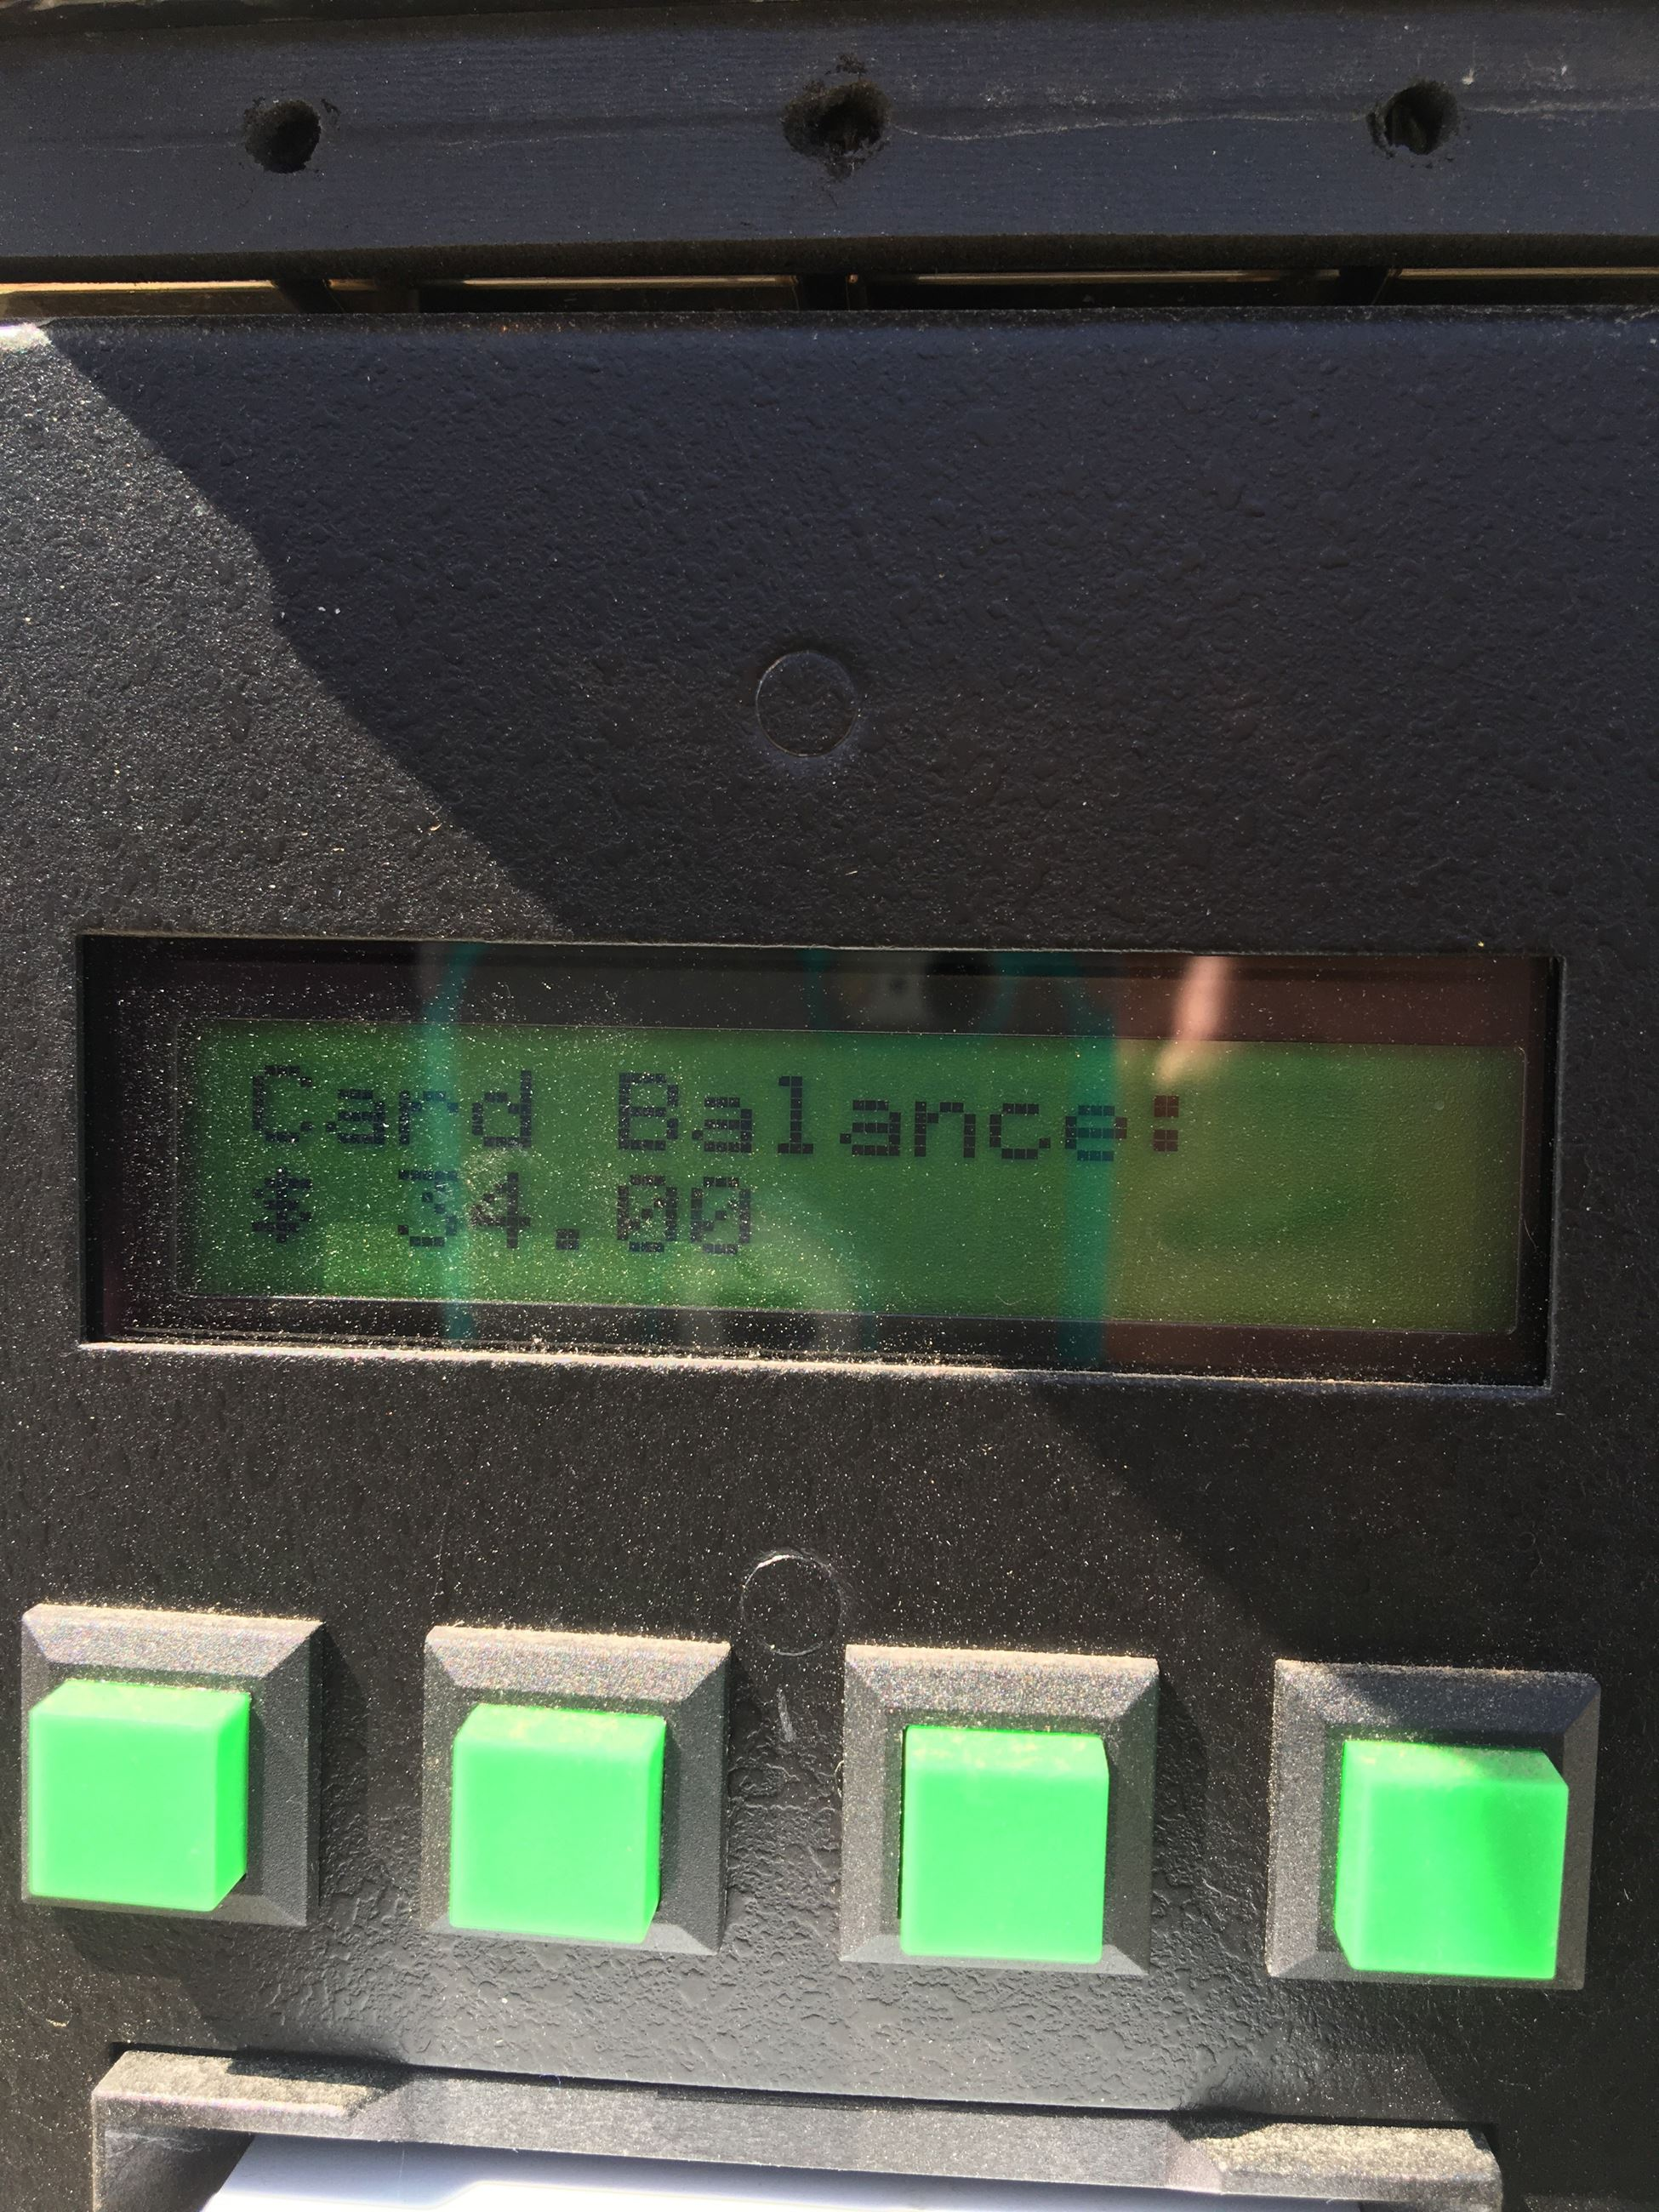 Watersalesman Card Reader Display-Balance Available